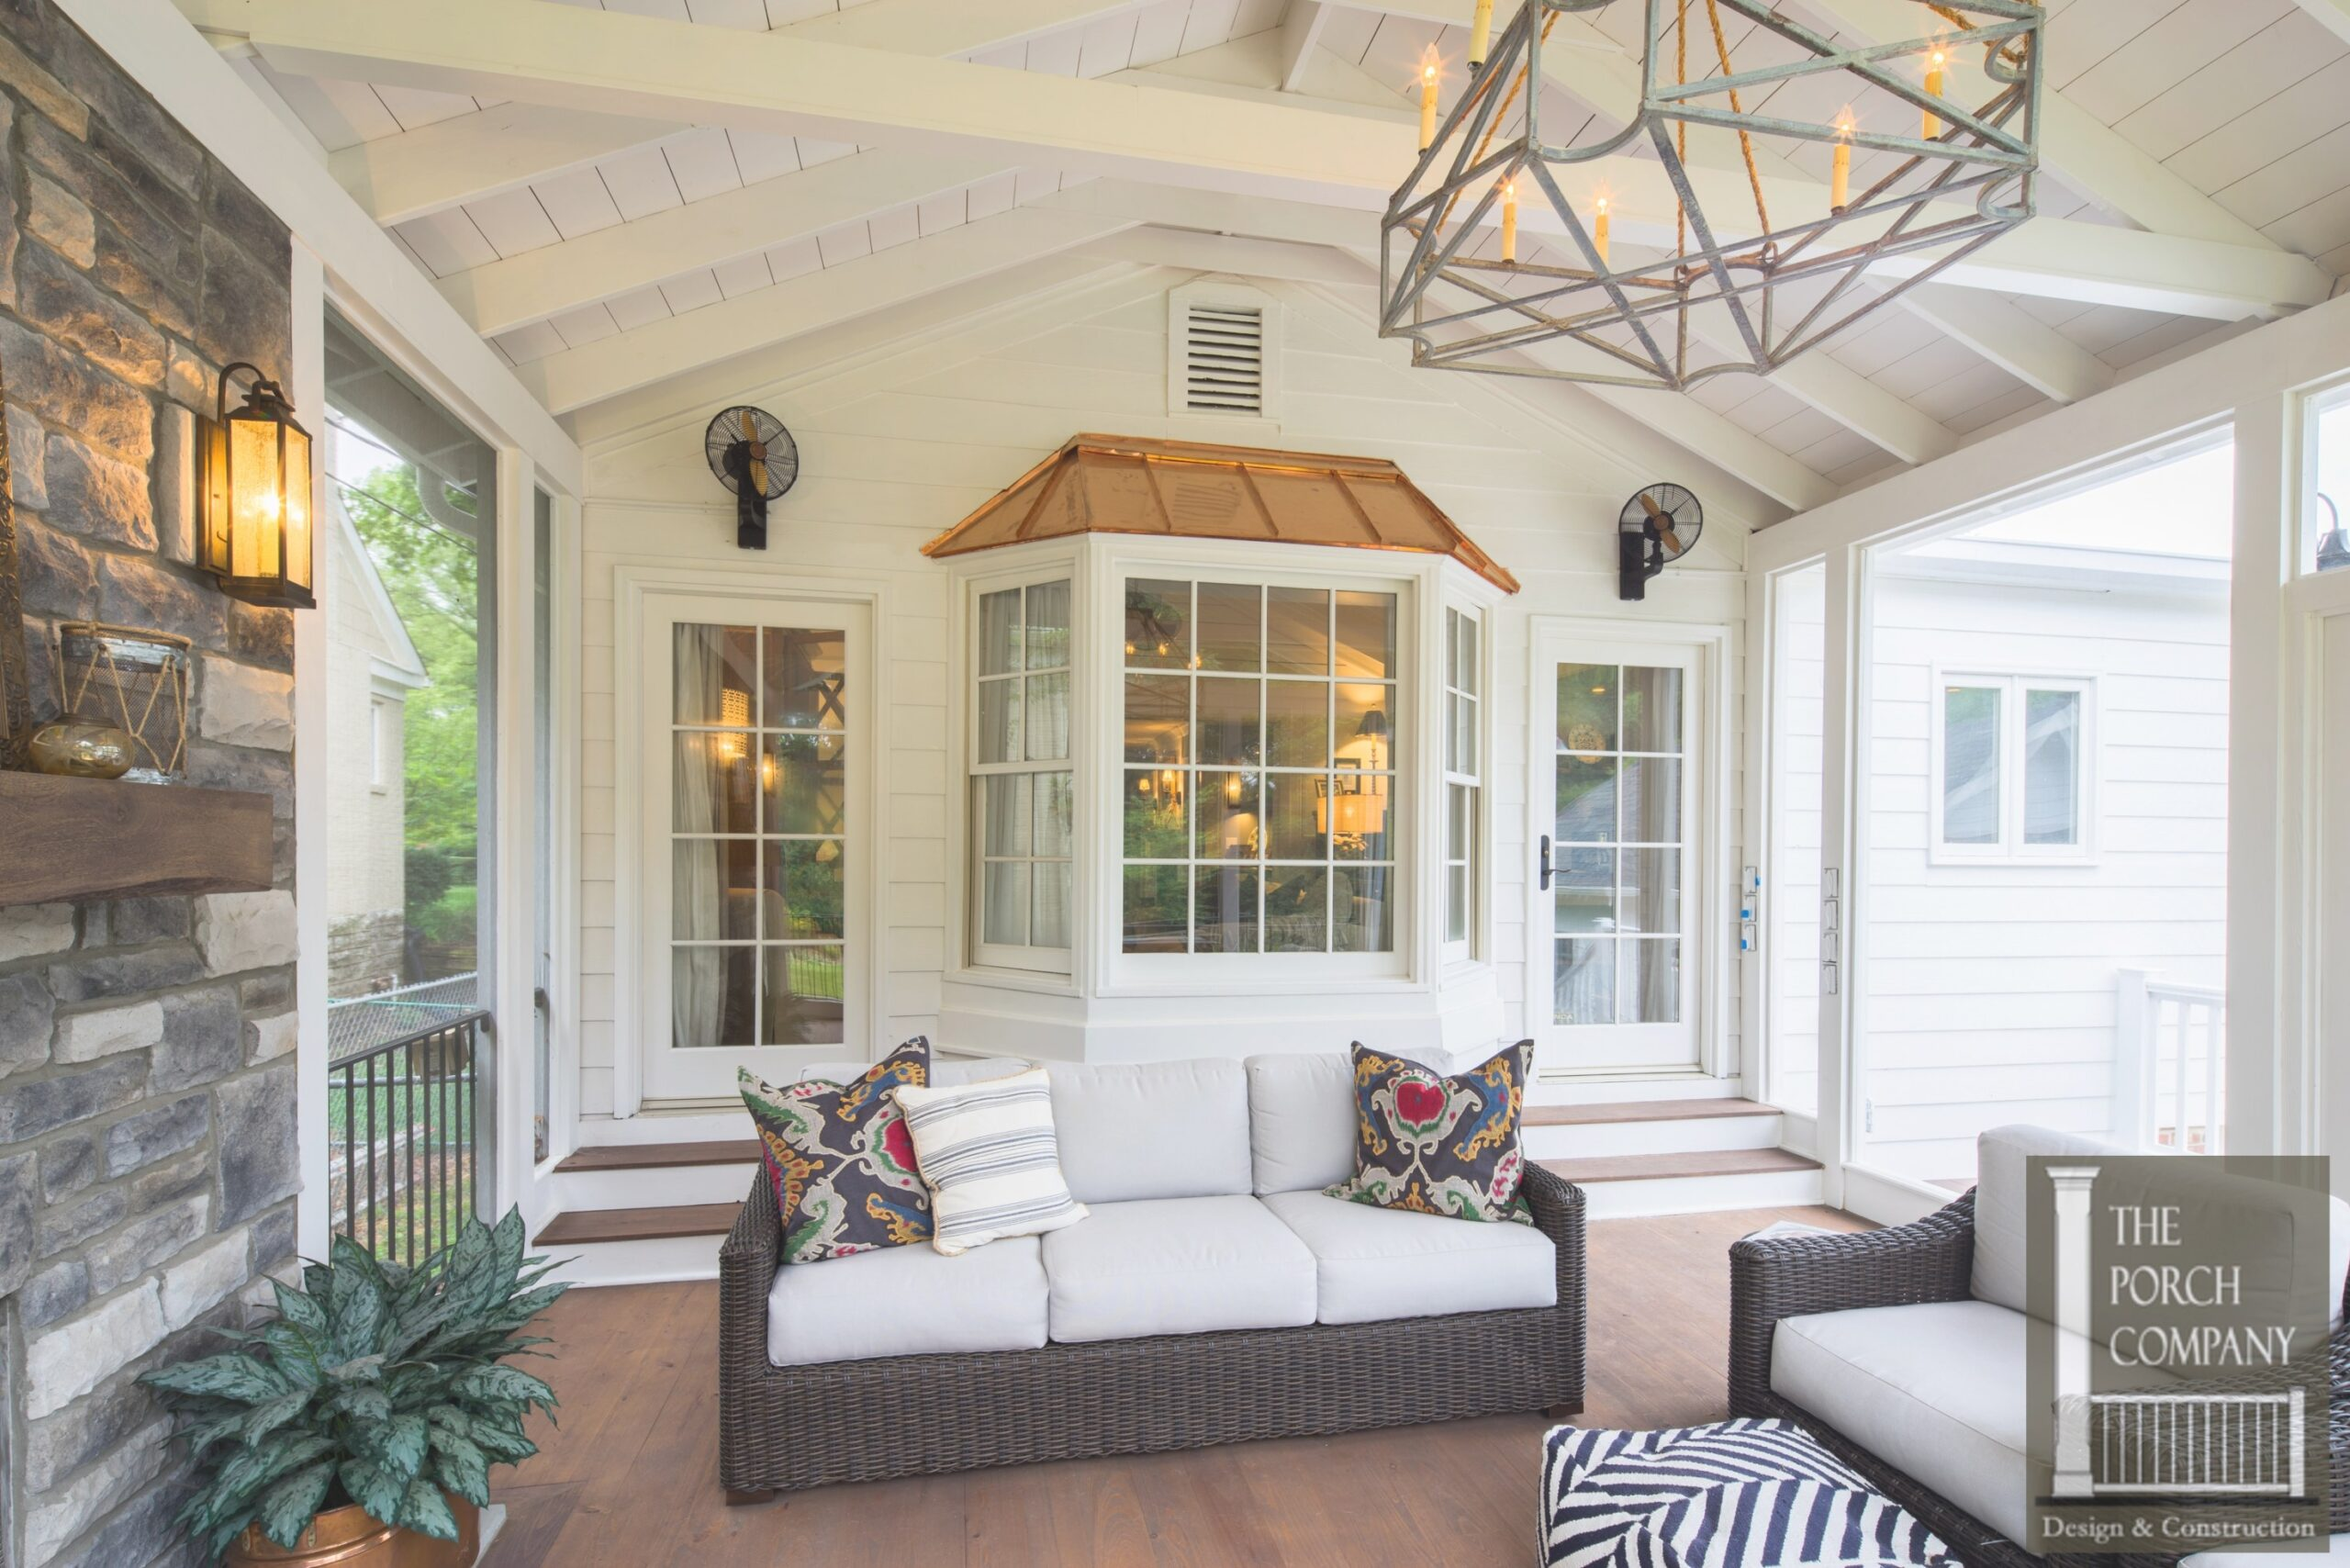 Screened Porch And Garage Oasis - The Porch Company throughout Screened In Porch Ideas